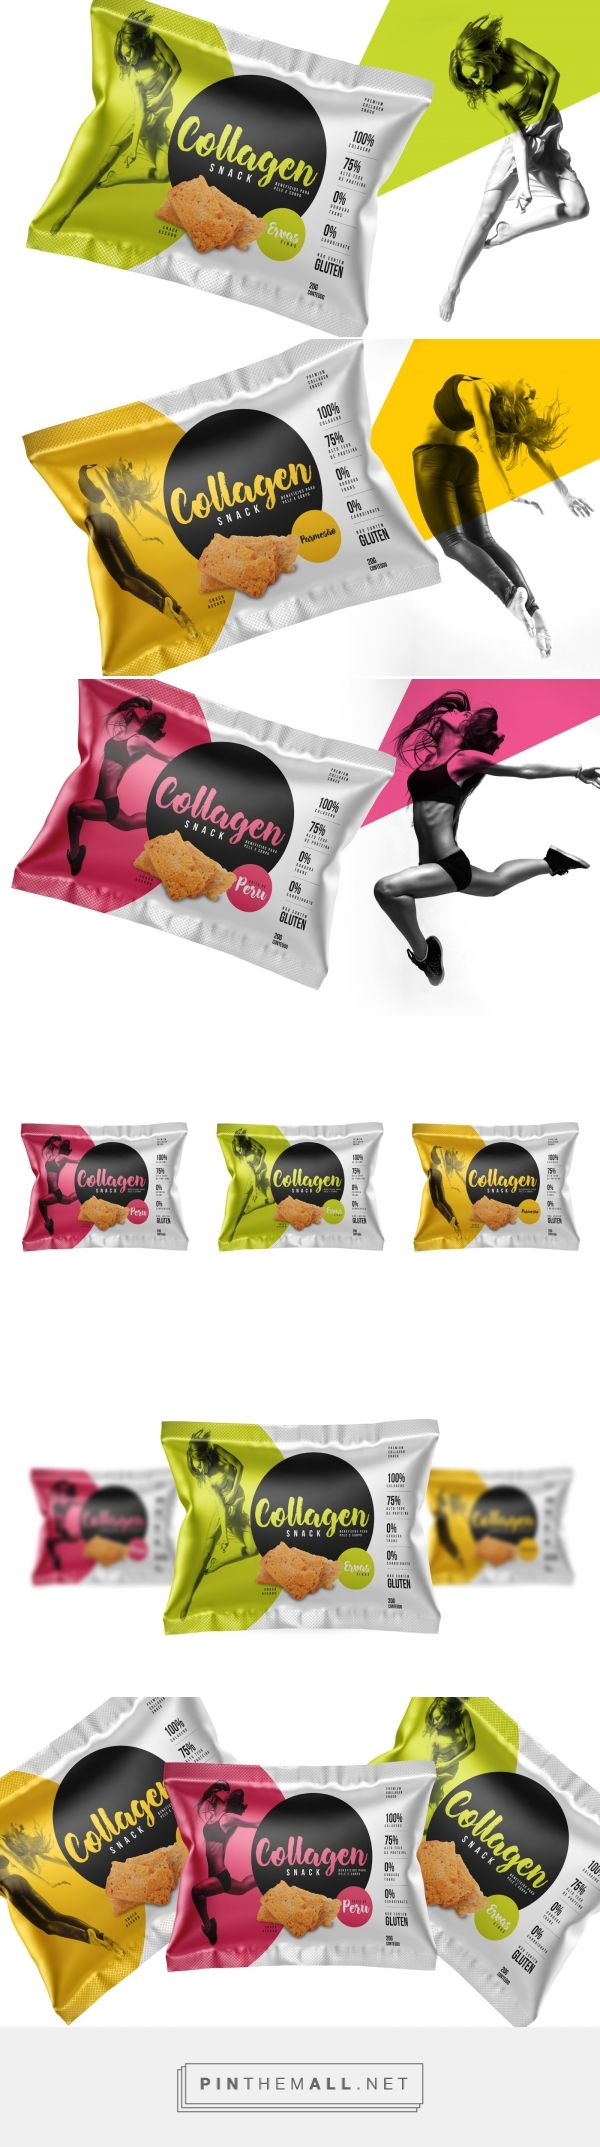 Collagen Snack (Concept) - Packaging of the World - Creative Package Design Gallery - http://www.packagingoftheworld.com/2017/07/collagen-snack-concept.html - created via https://pinthemall.net